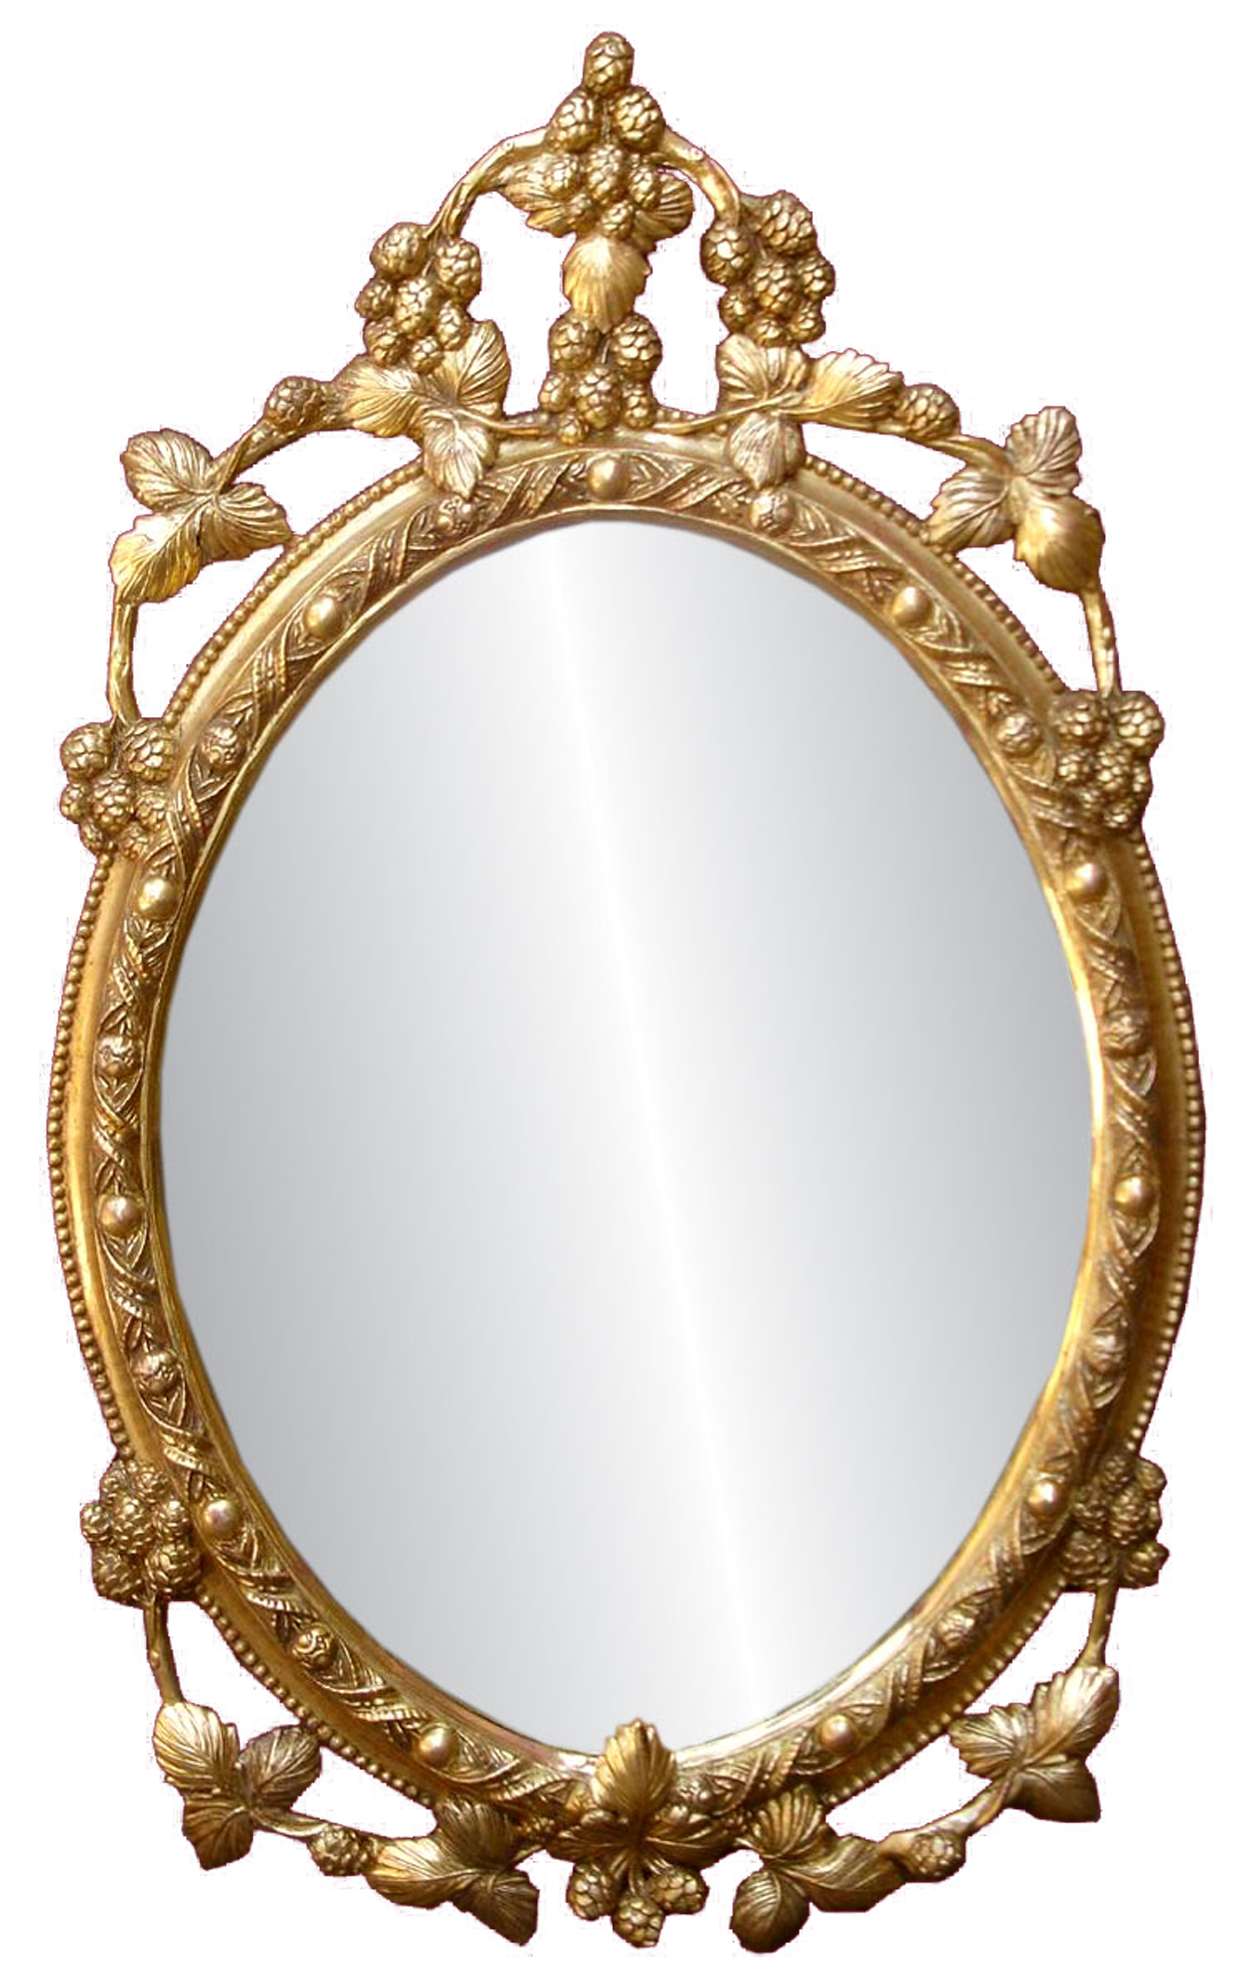 Mirror Clip Art - Cliparts.co